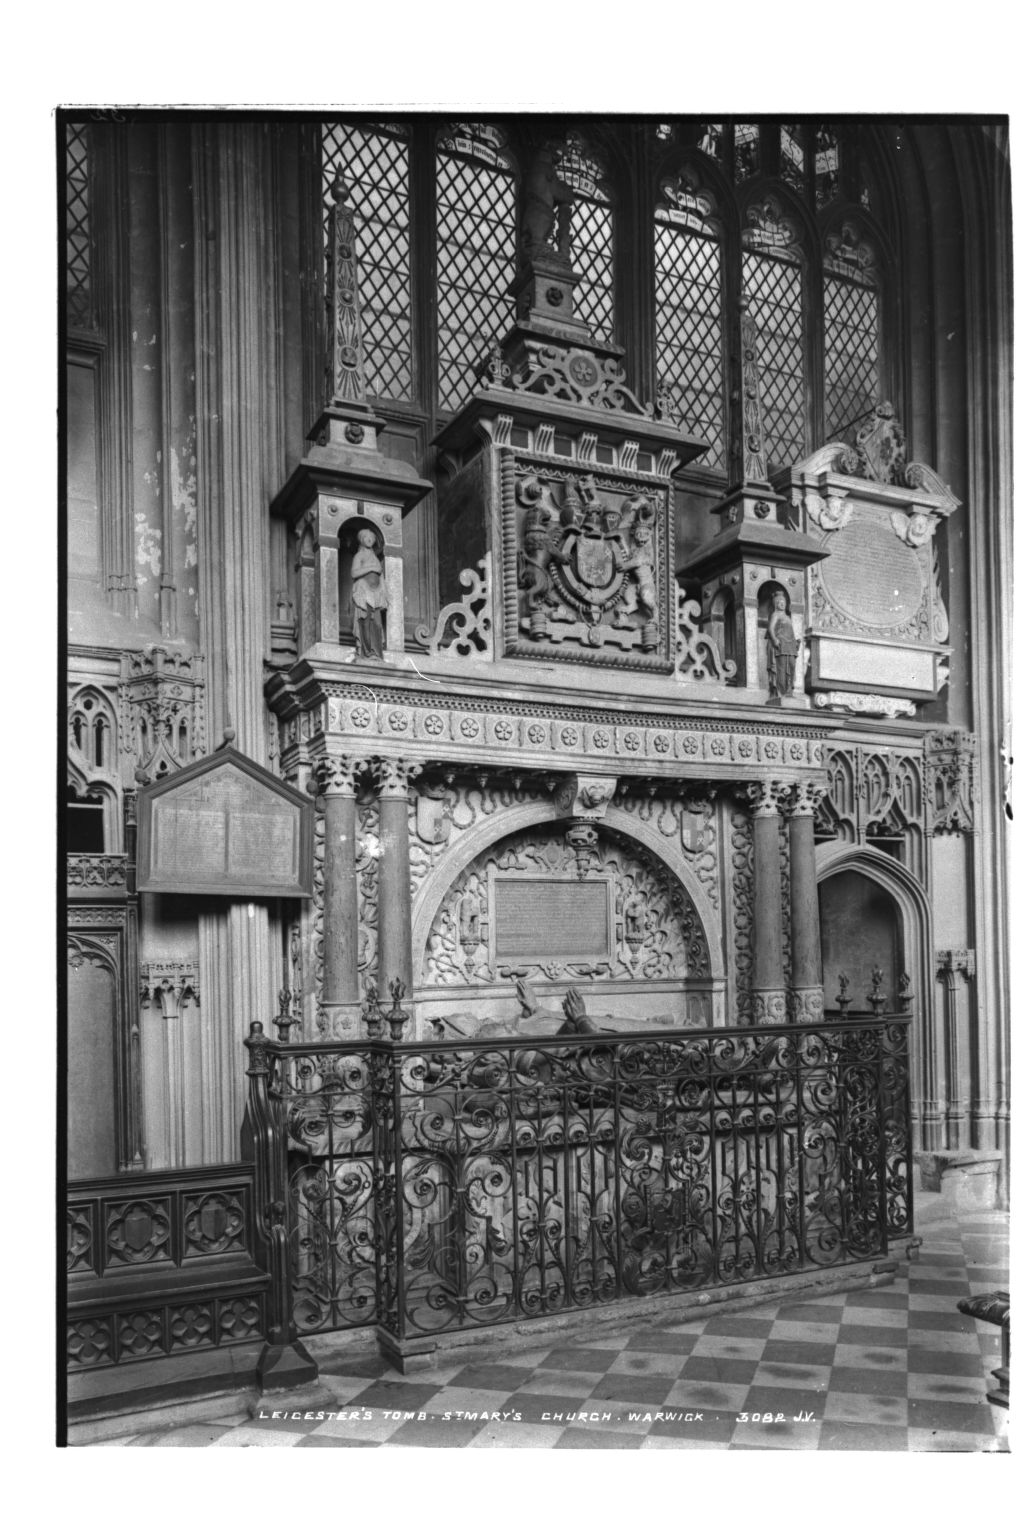 Leicester's Tomb, St Mary's.